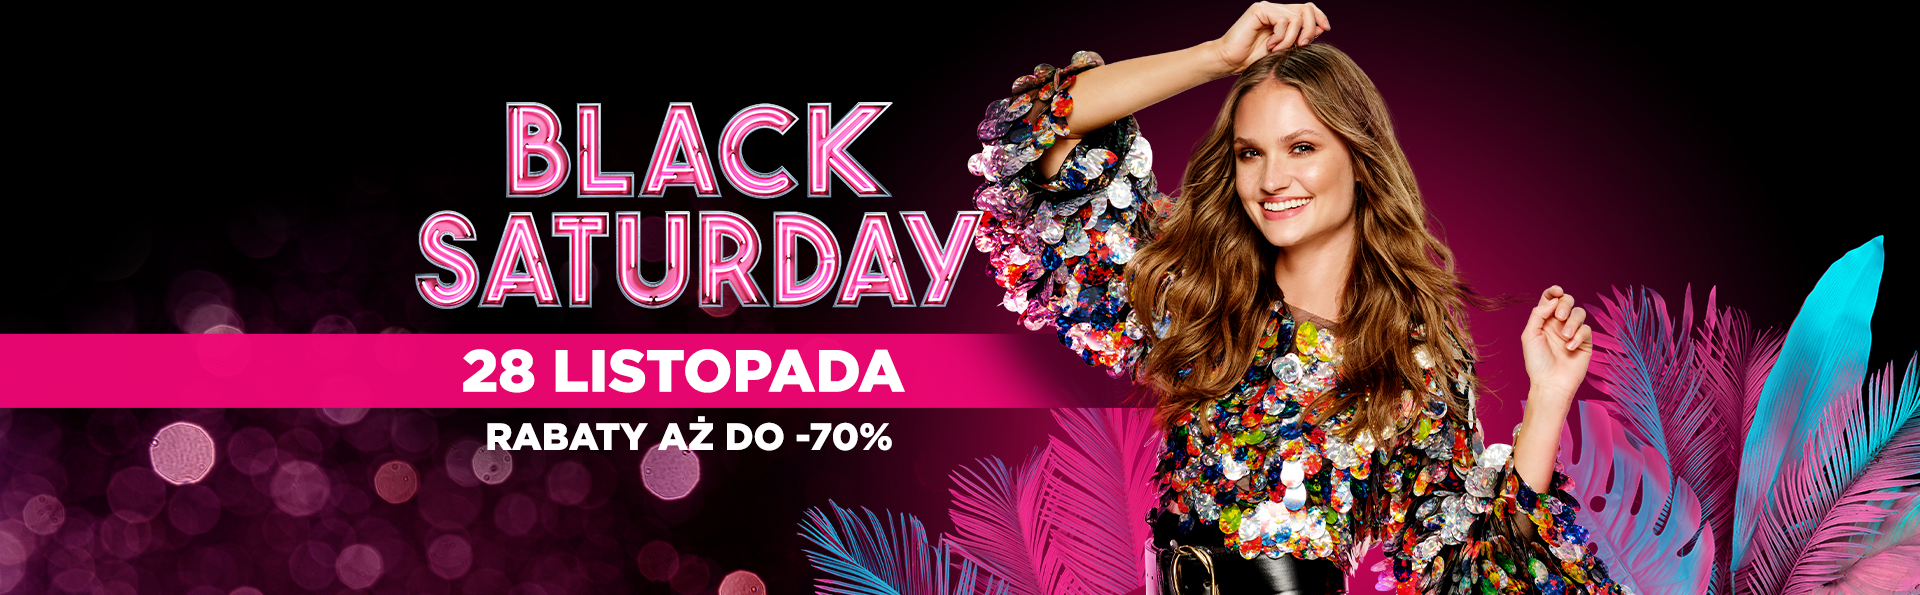 Black Saturday już 28 listopada!